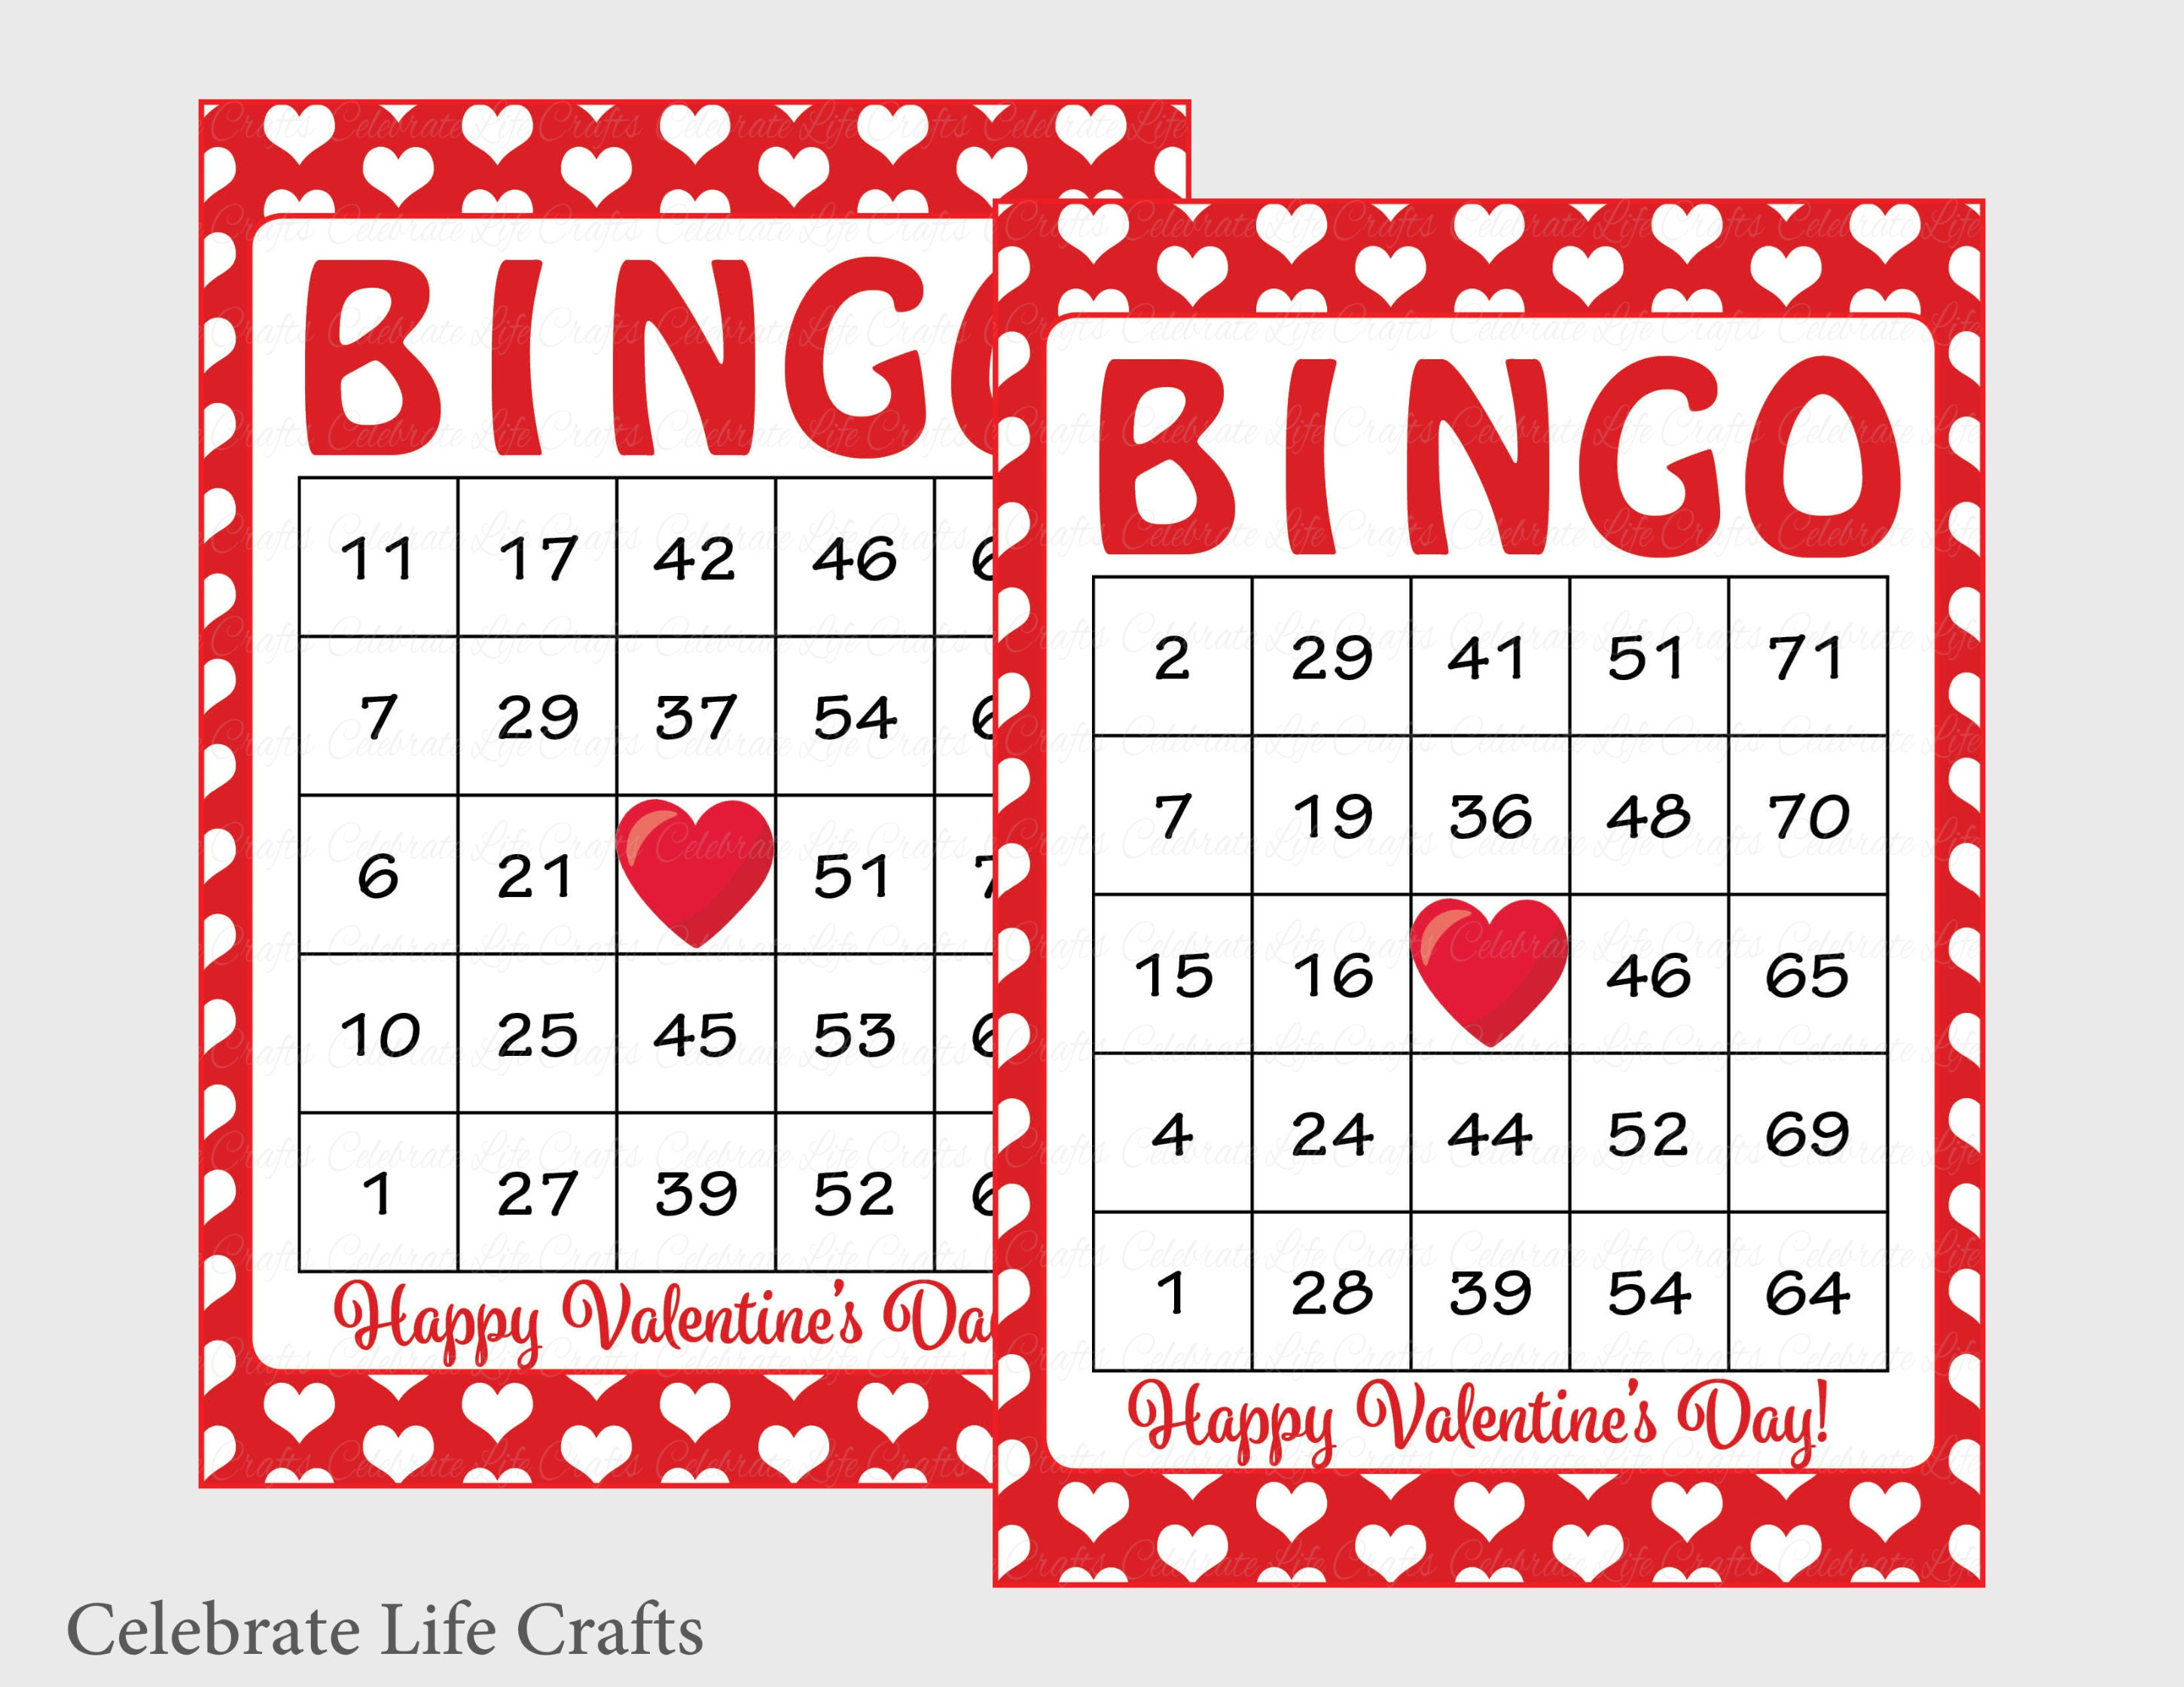 graphic regarding Printable Valentine Bingo Cards referred to as 100 Valentines Bingo Playing cards - Printable Valentine Bingo Playing cards - Instantaneous Obtain - Valentines Working day Match for youngsters - Purple White Hearts - V1005